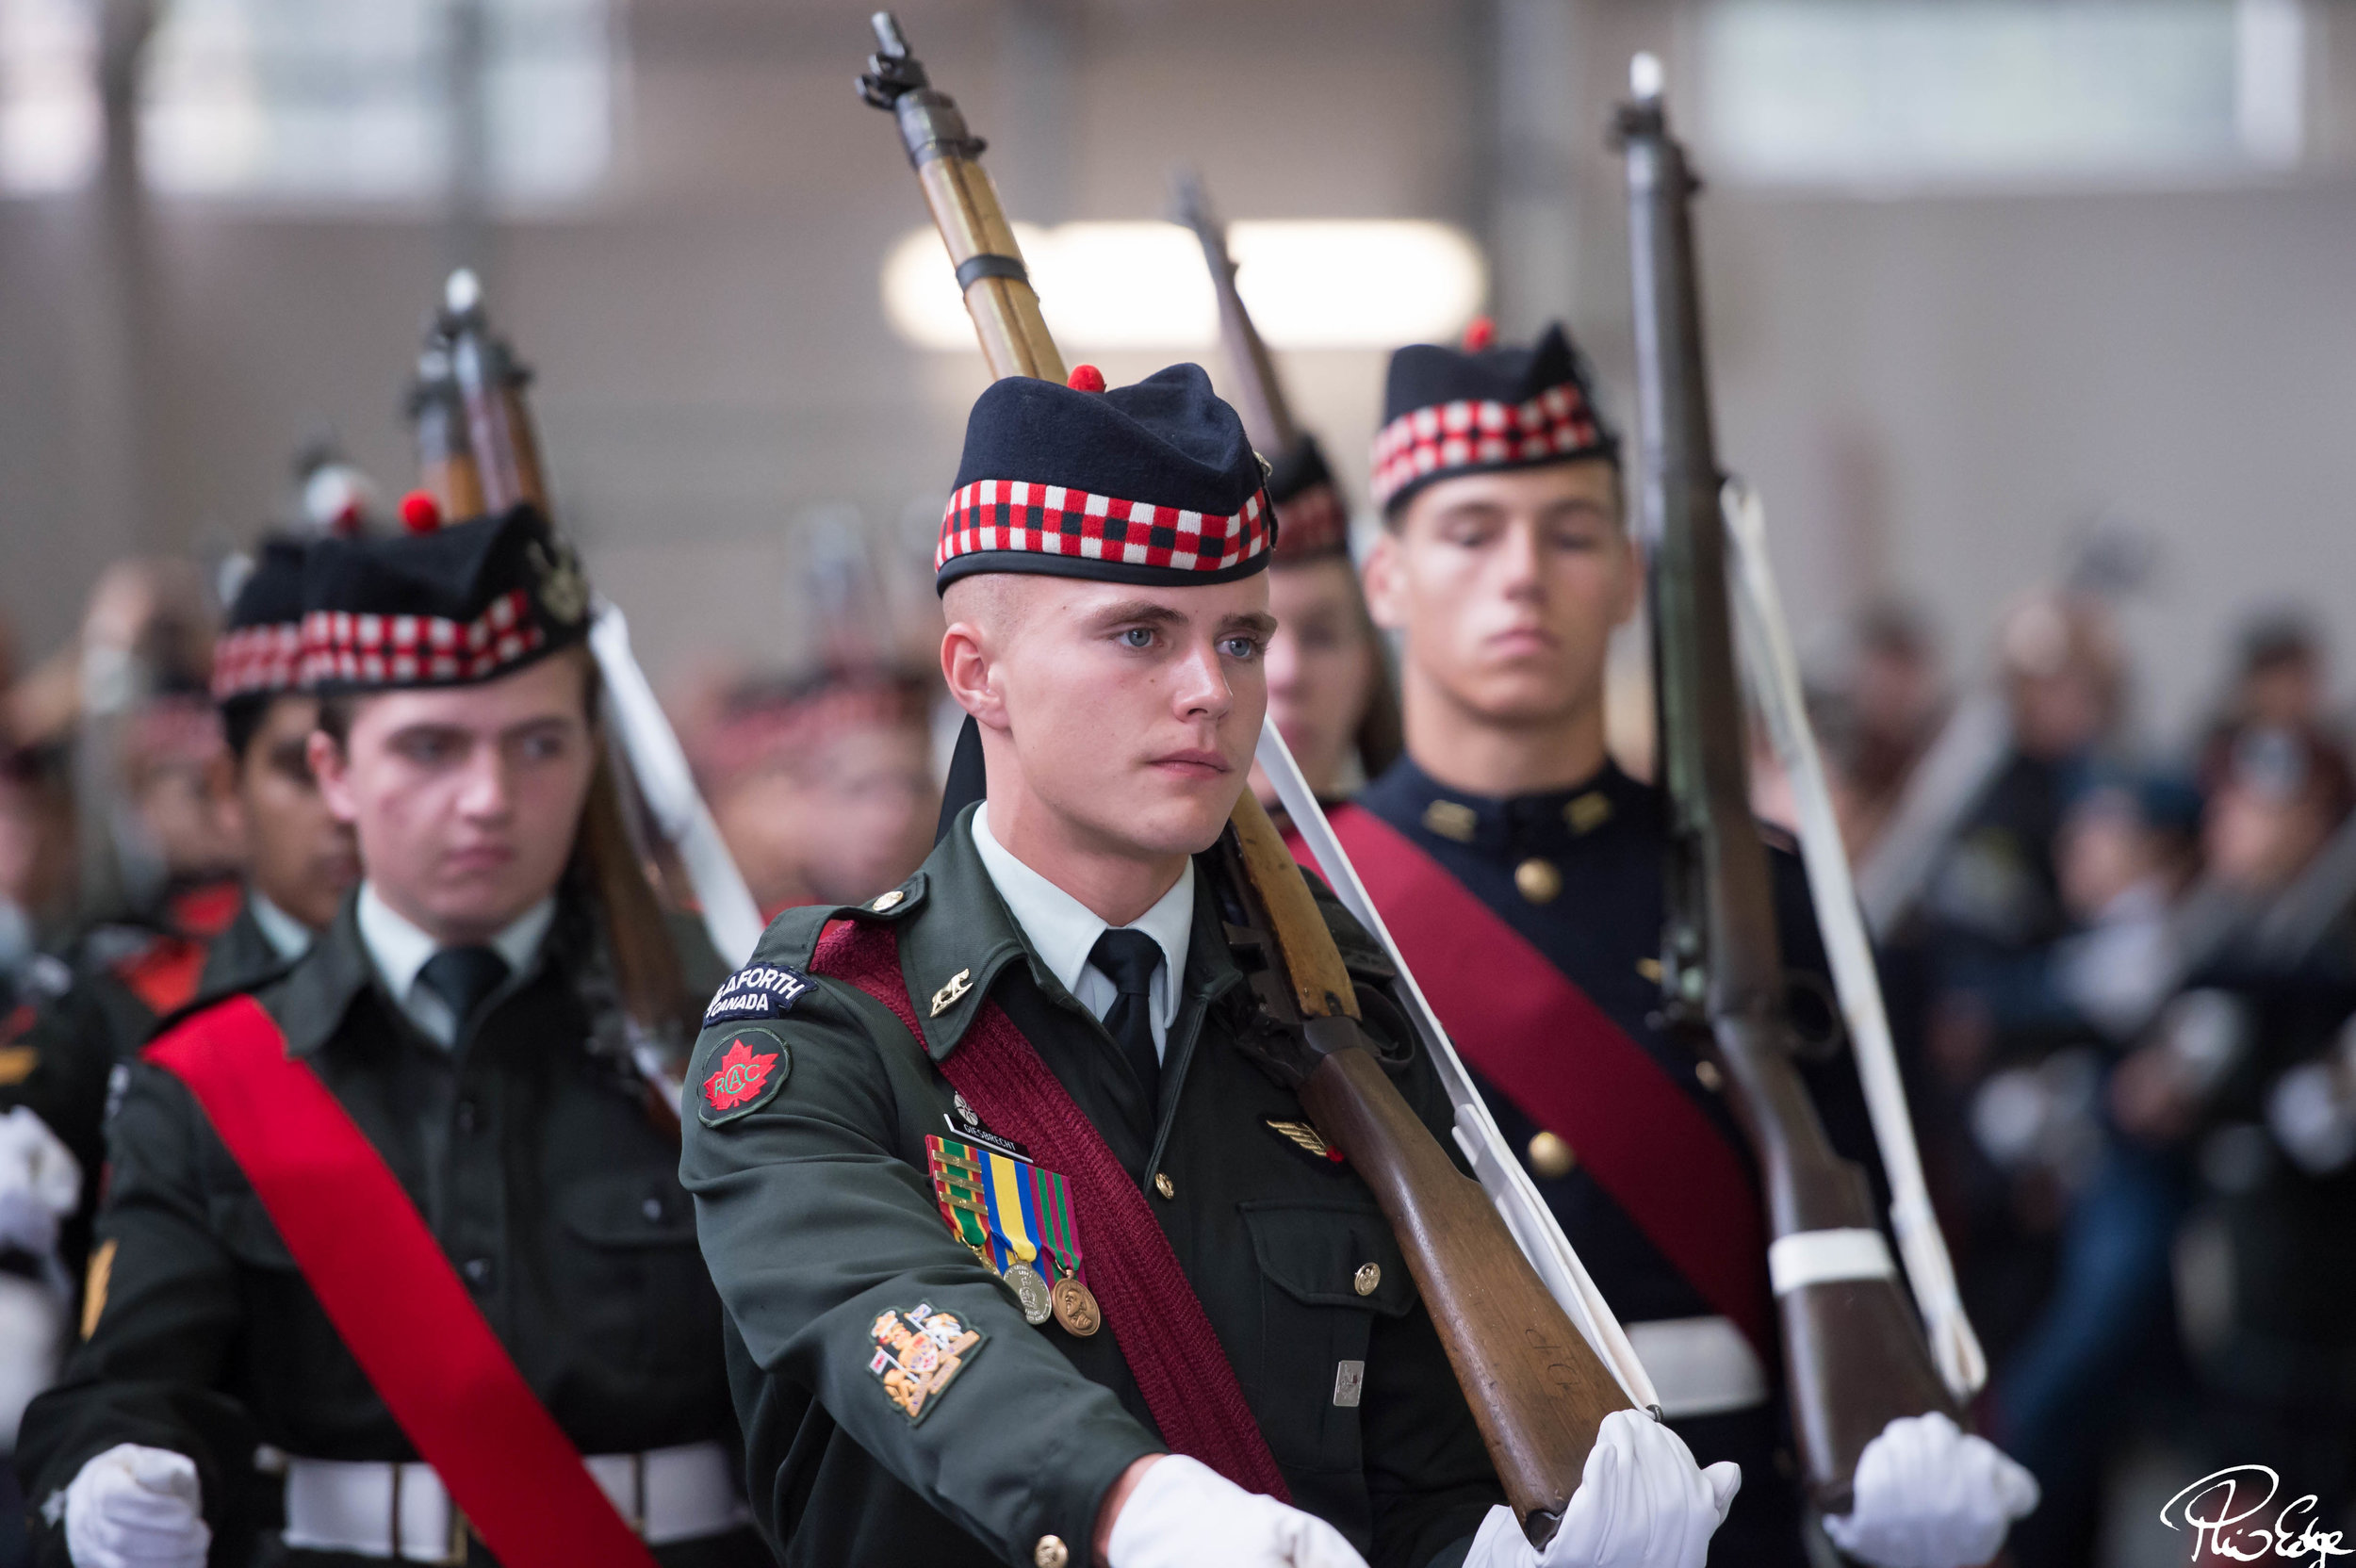 Seaforth Highlanders of Canada Homecoming 24 Sept 16 No-95.jpg